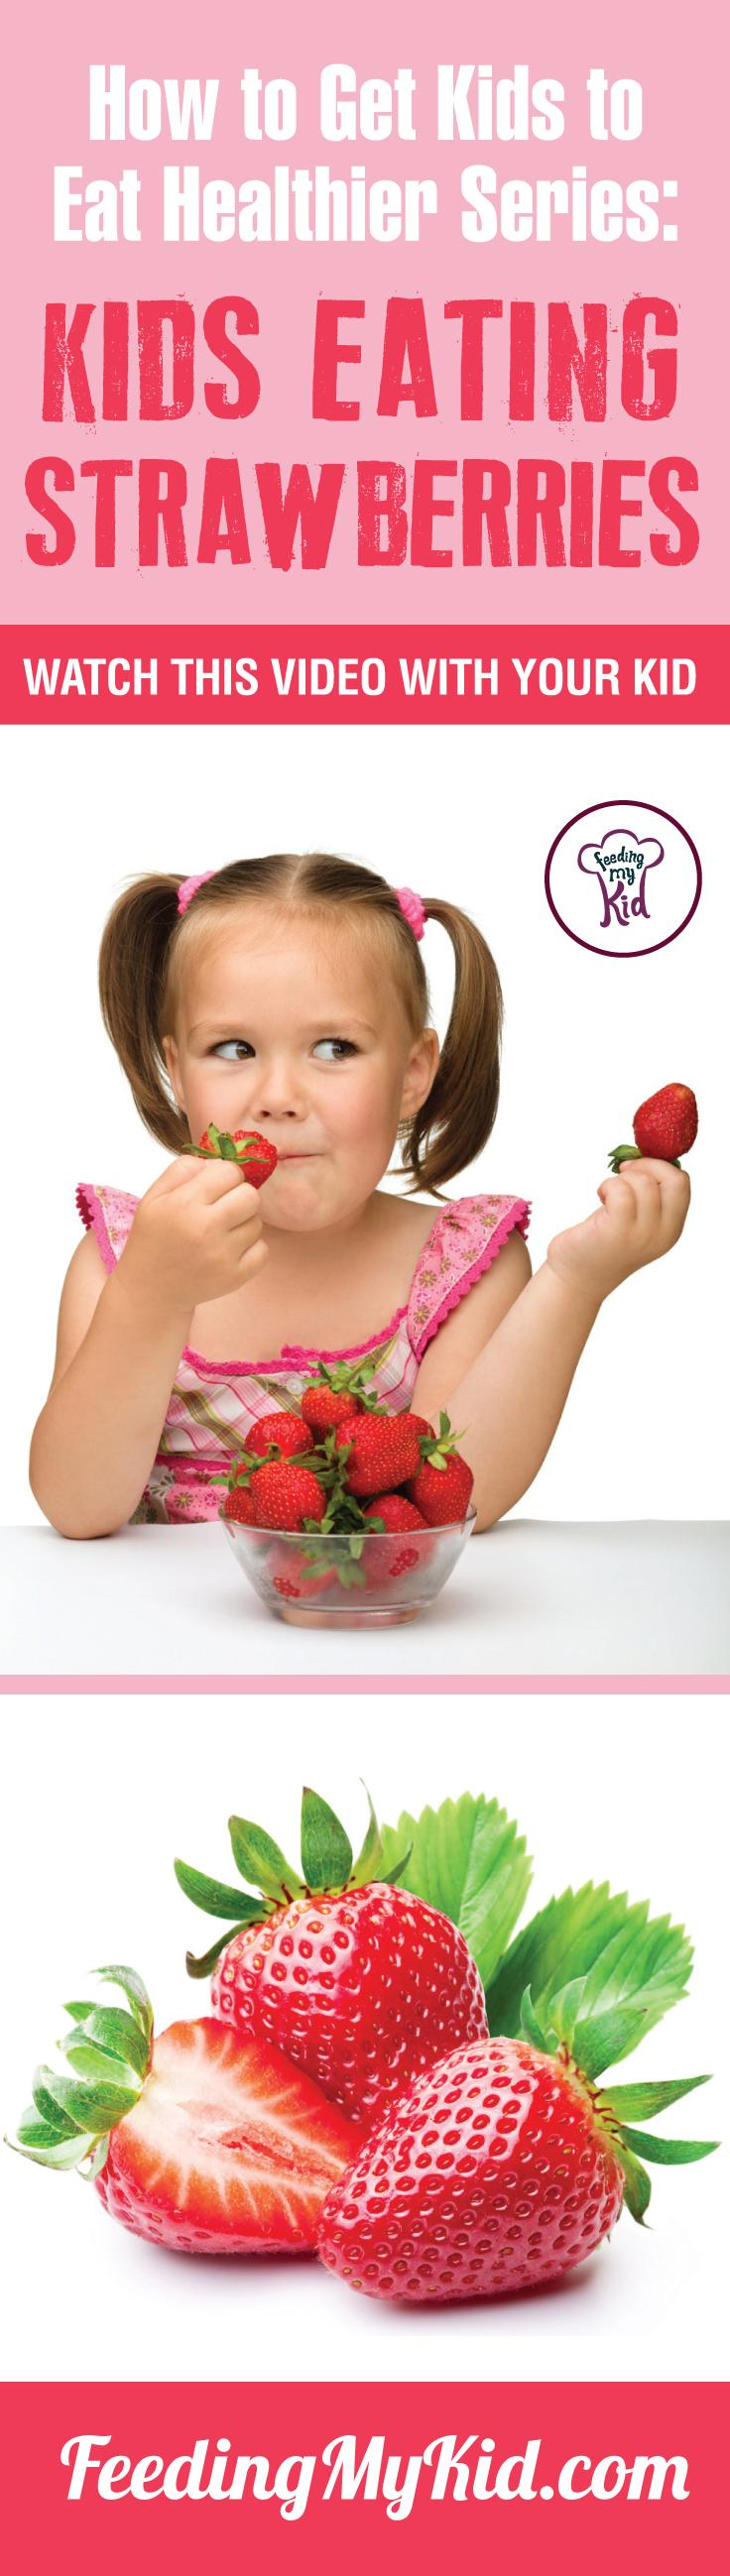 This is a must pin! Watch these videos with your kids of kids eating strawberries and get your kids to eat Strawberries, too. Find out how it works here. Feeding My Kid is a filled with all the information you need about how to raise your kids, from healthy tips to nutritious recipes. #Strawberries #pickyeating #getkidstoeat